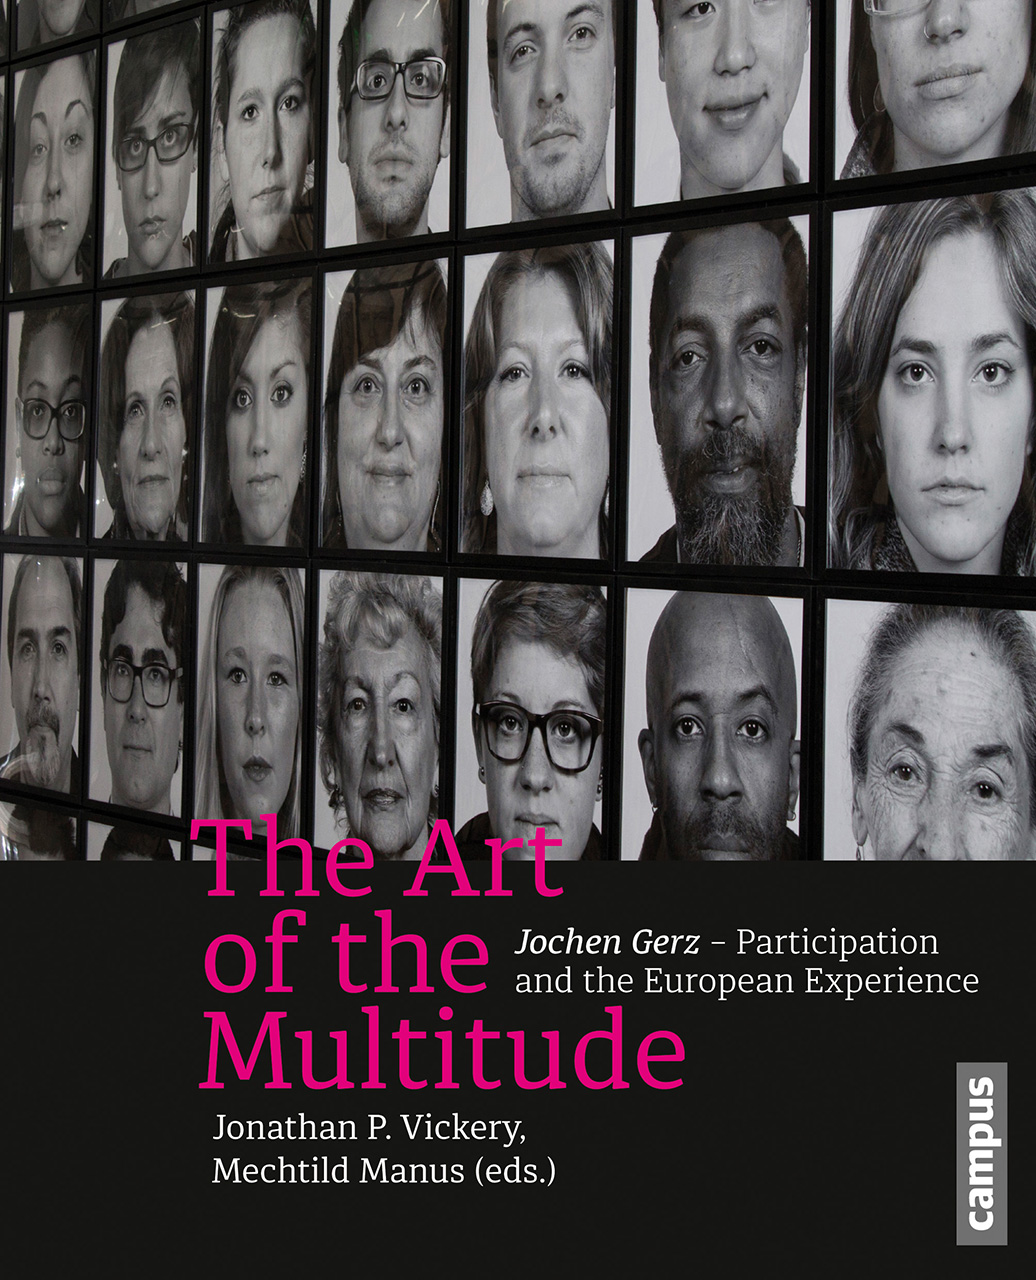 The Art of the Multitude: Jochen Gerz-Participation and the European Experience